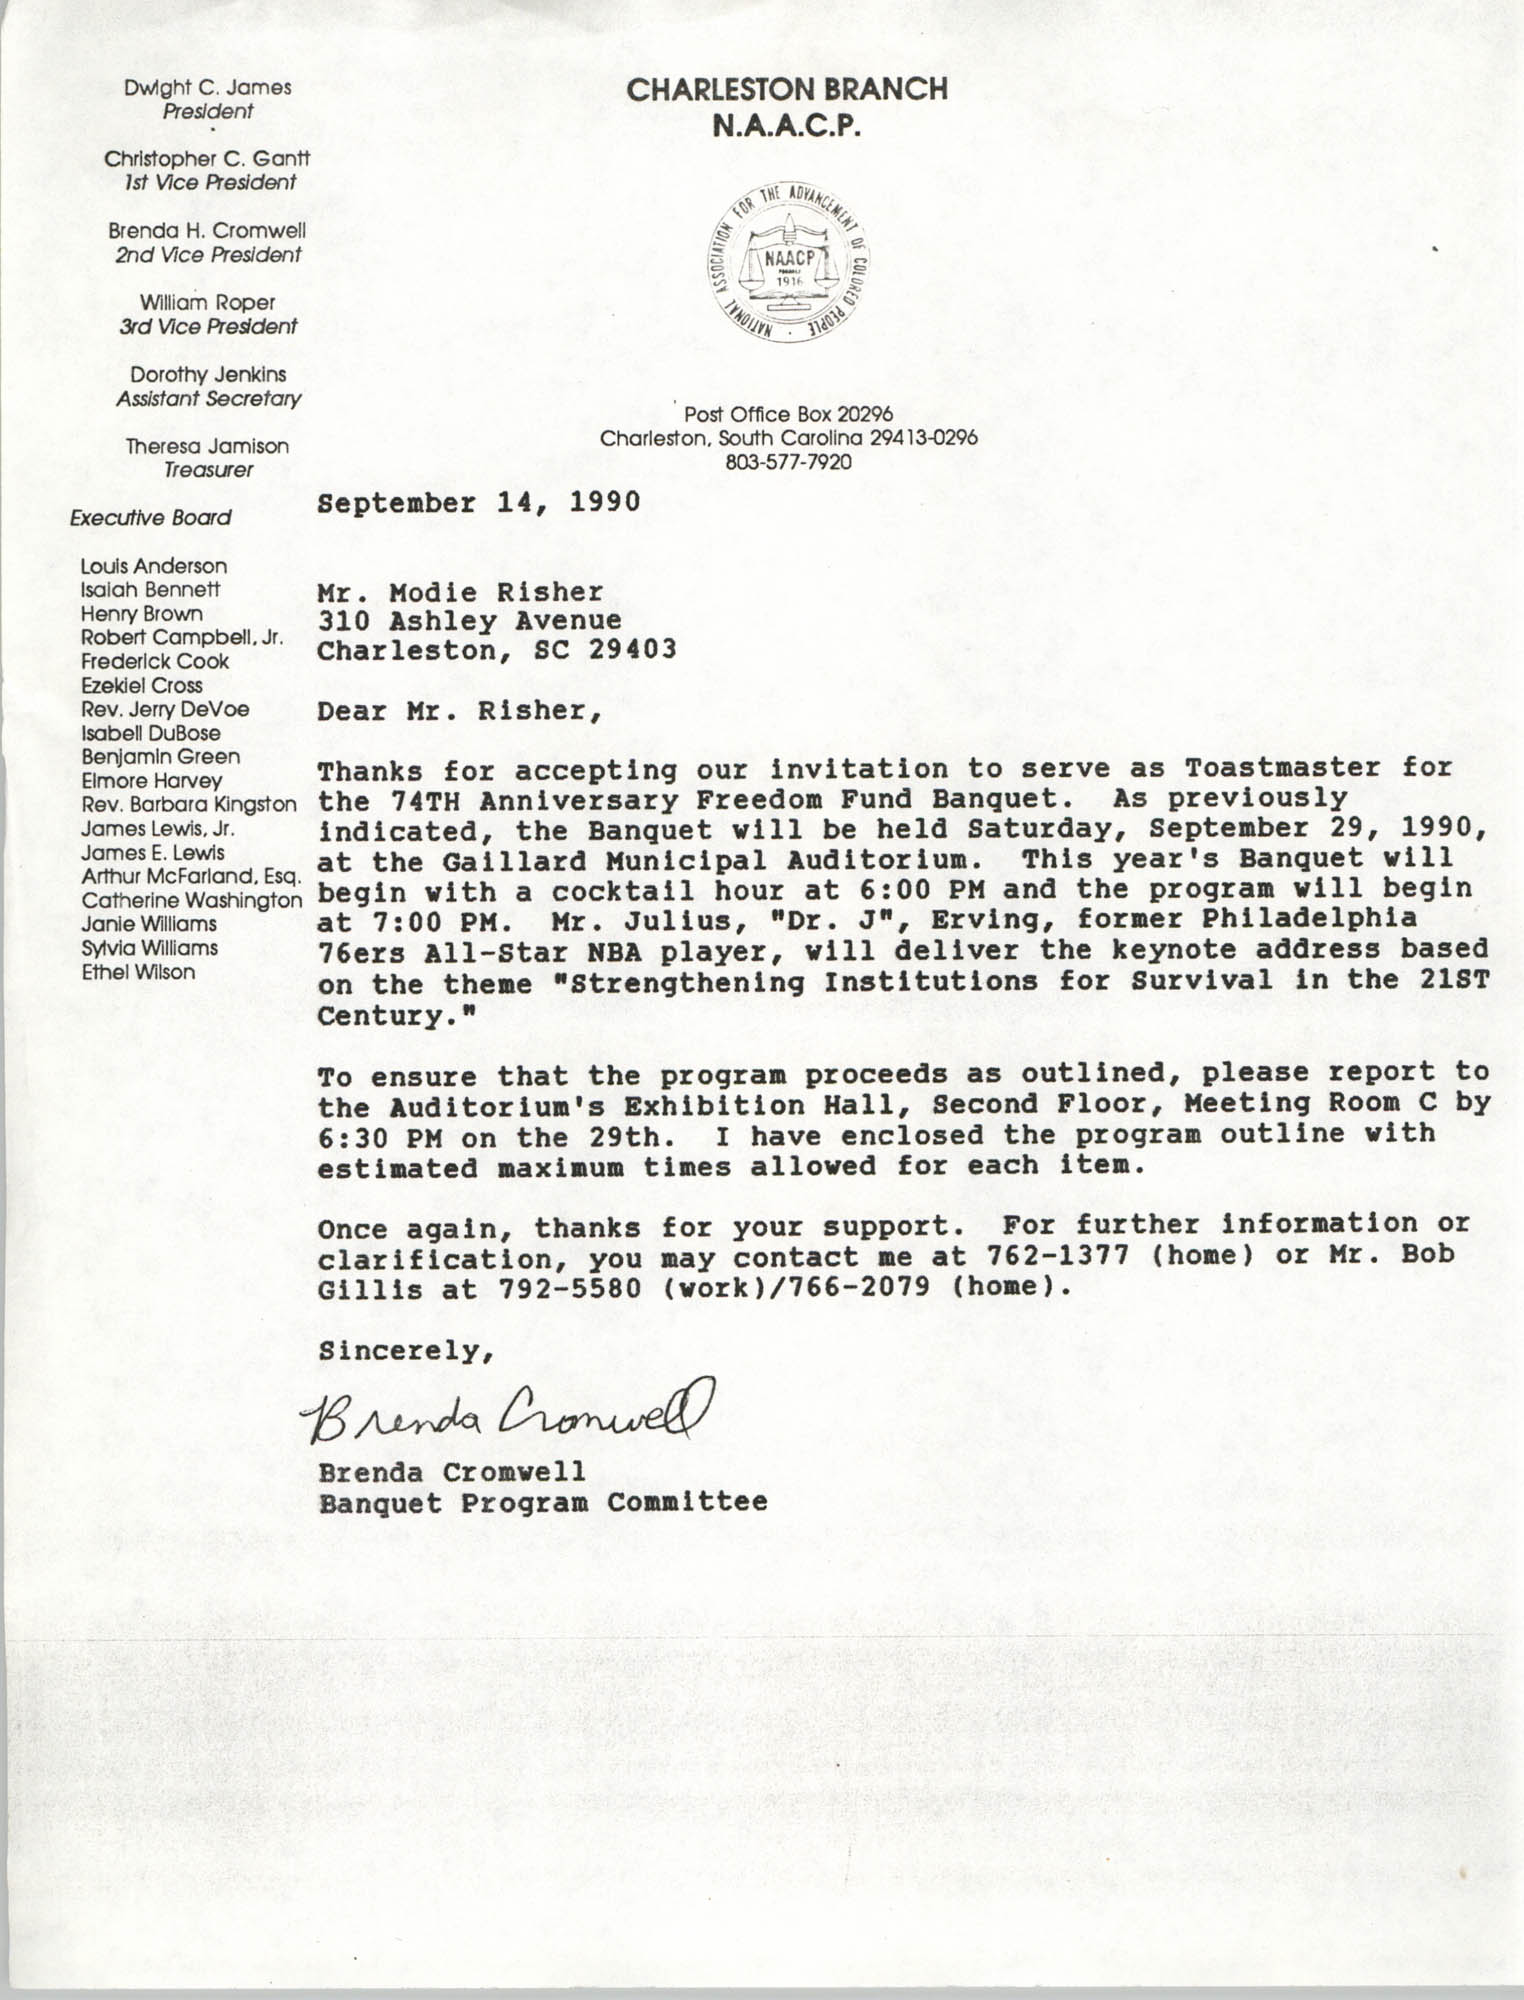 Letter from Brenda Cromwell to Modie Risher, September 14, 1990